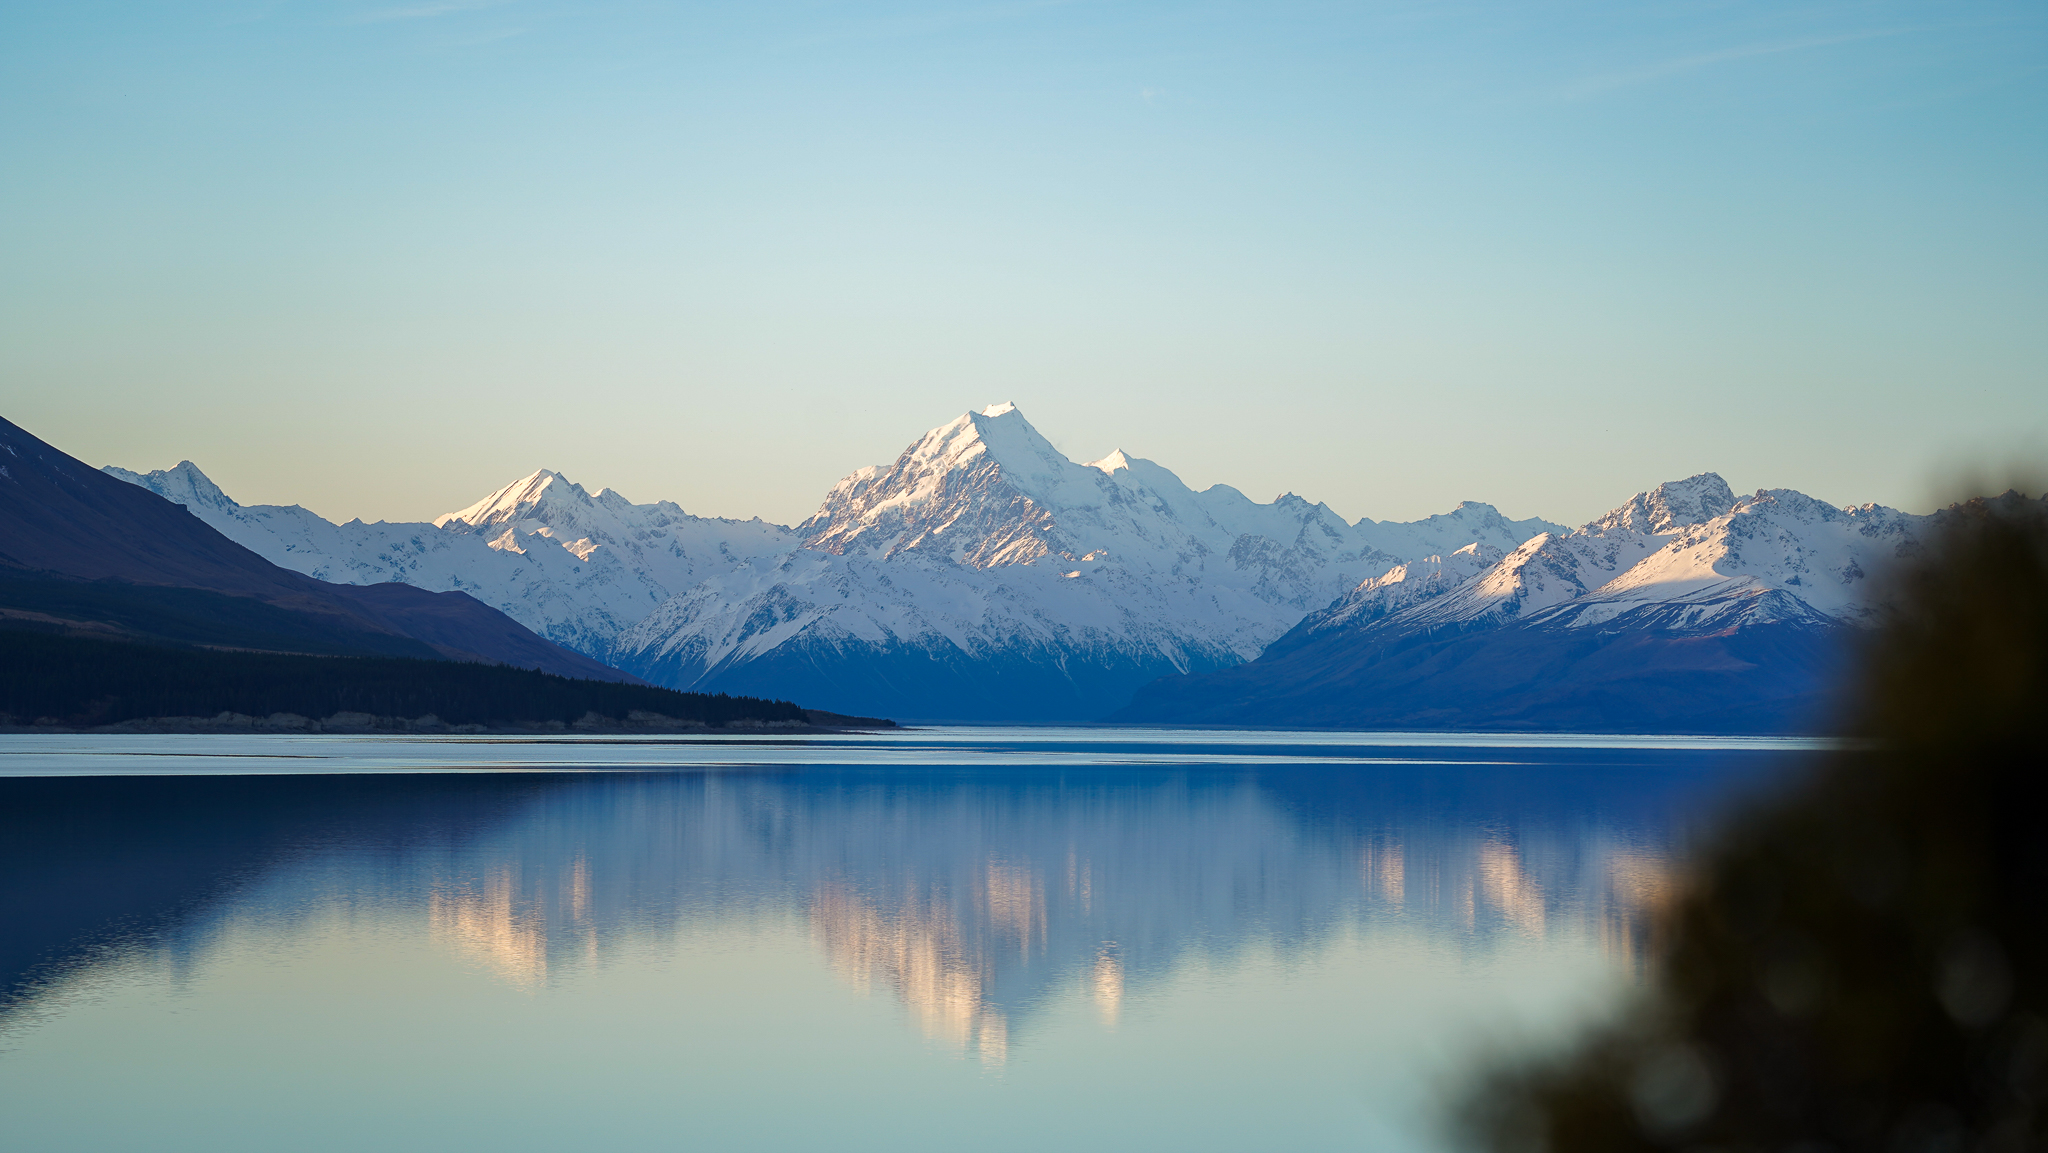 Mount Cook over Lake Pukaki at sunset the epitome of New Zealand's South Island